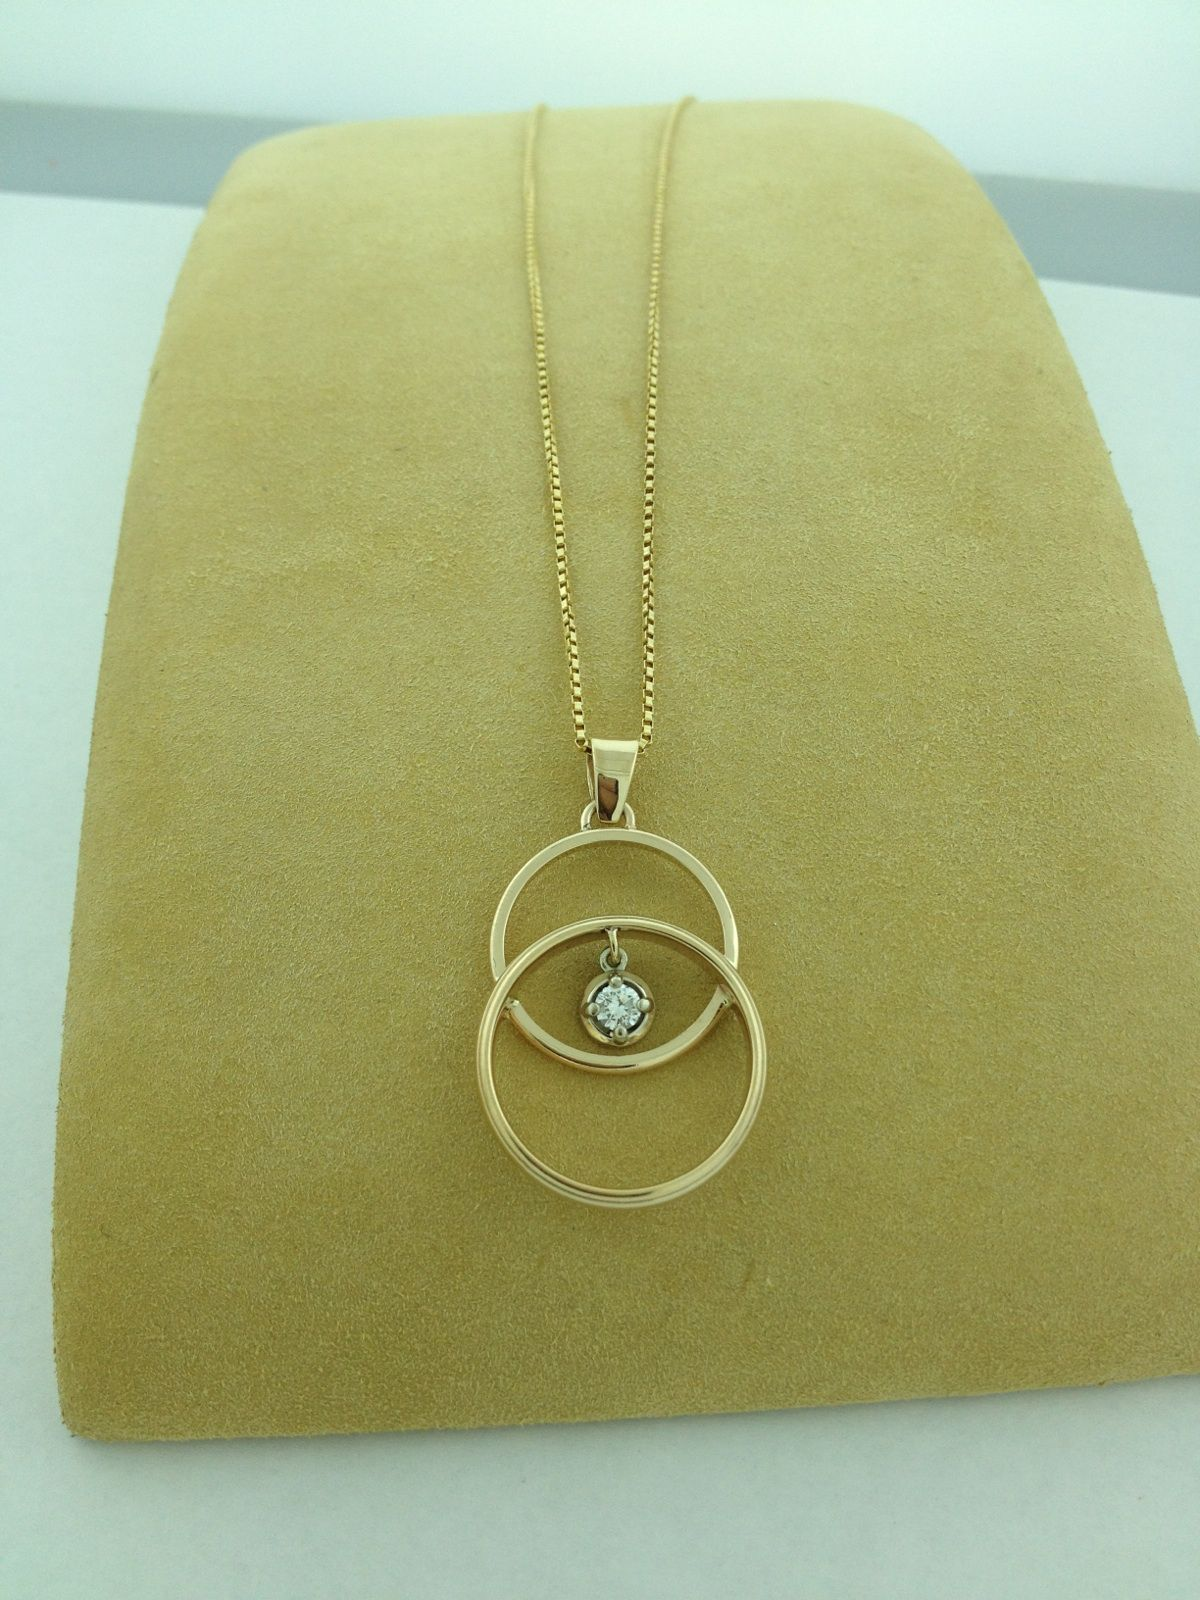 This is a necklace we made for a customer! We combined her